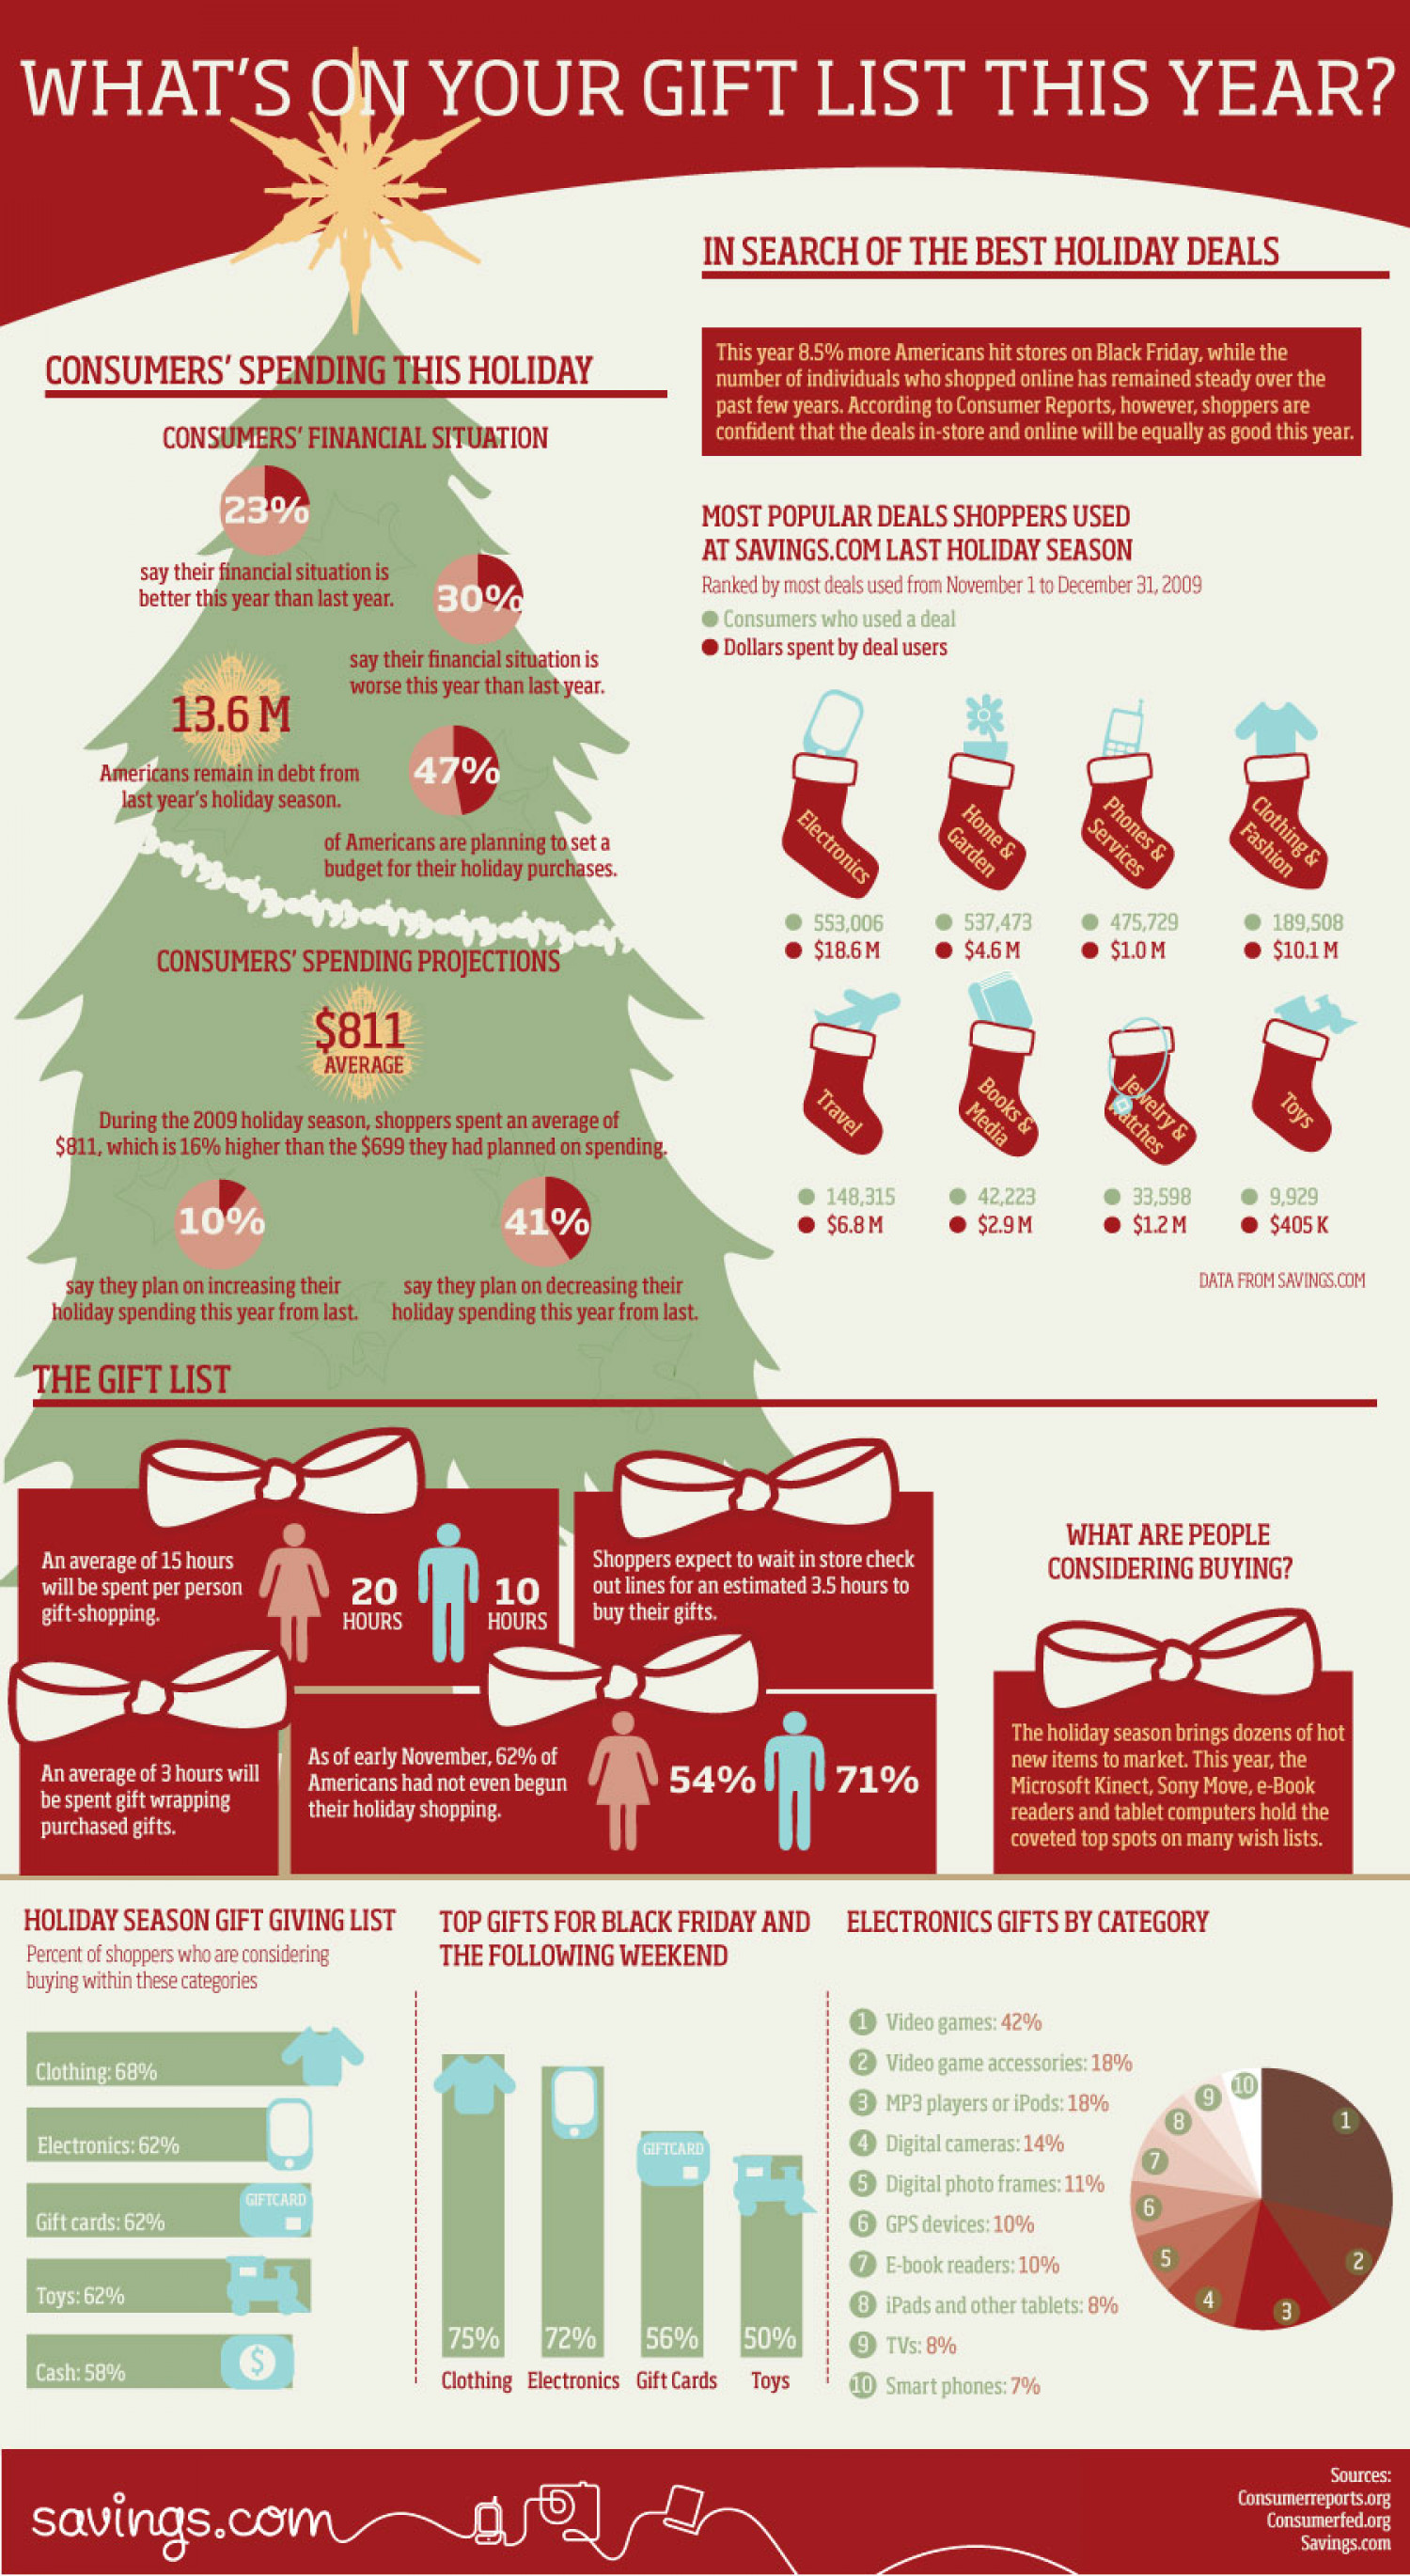 What's On Your Gift List This Year? Infographic